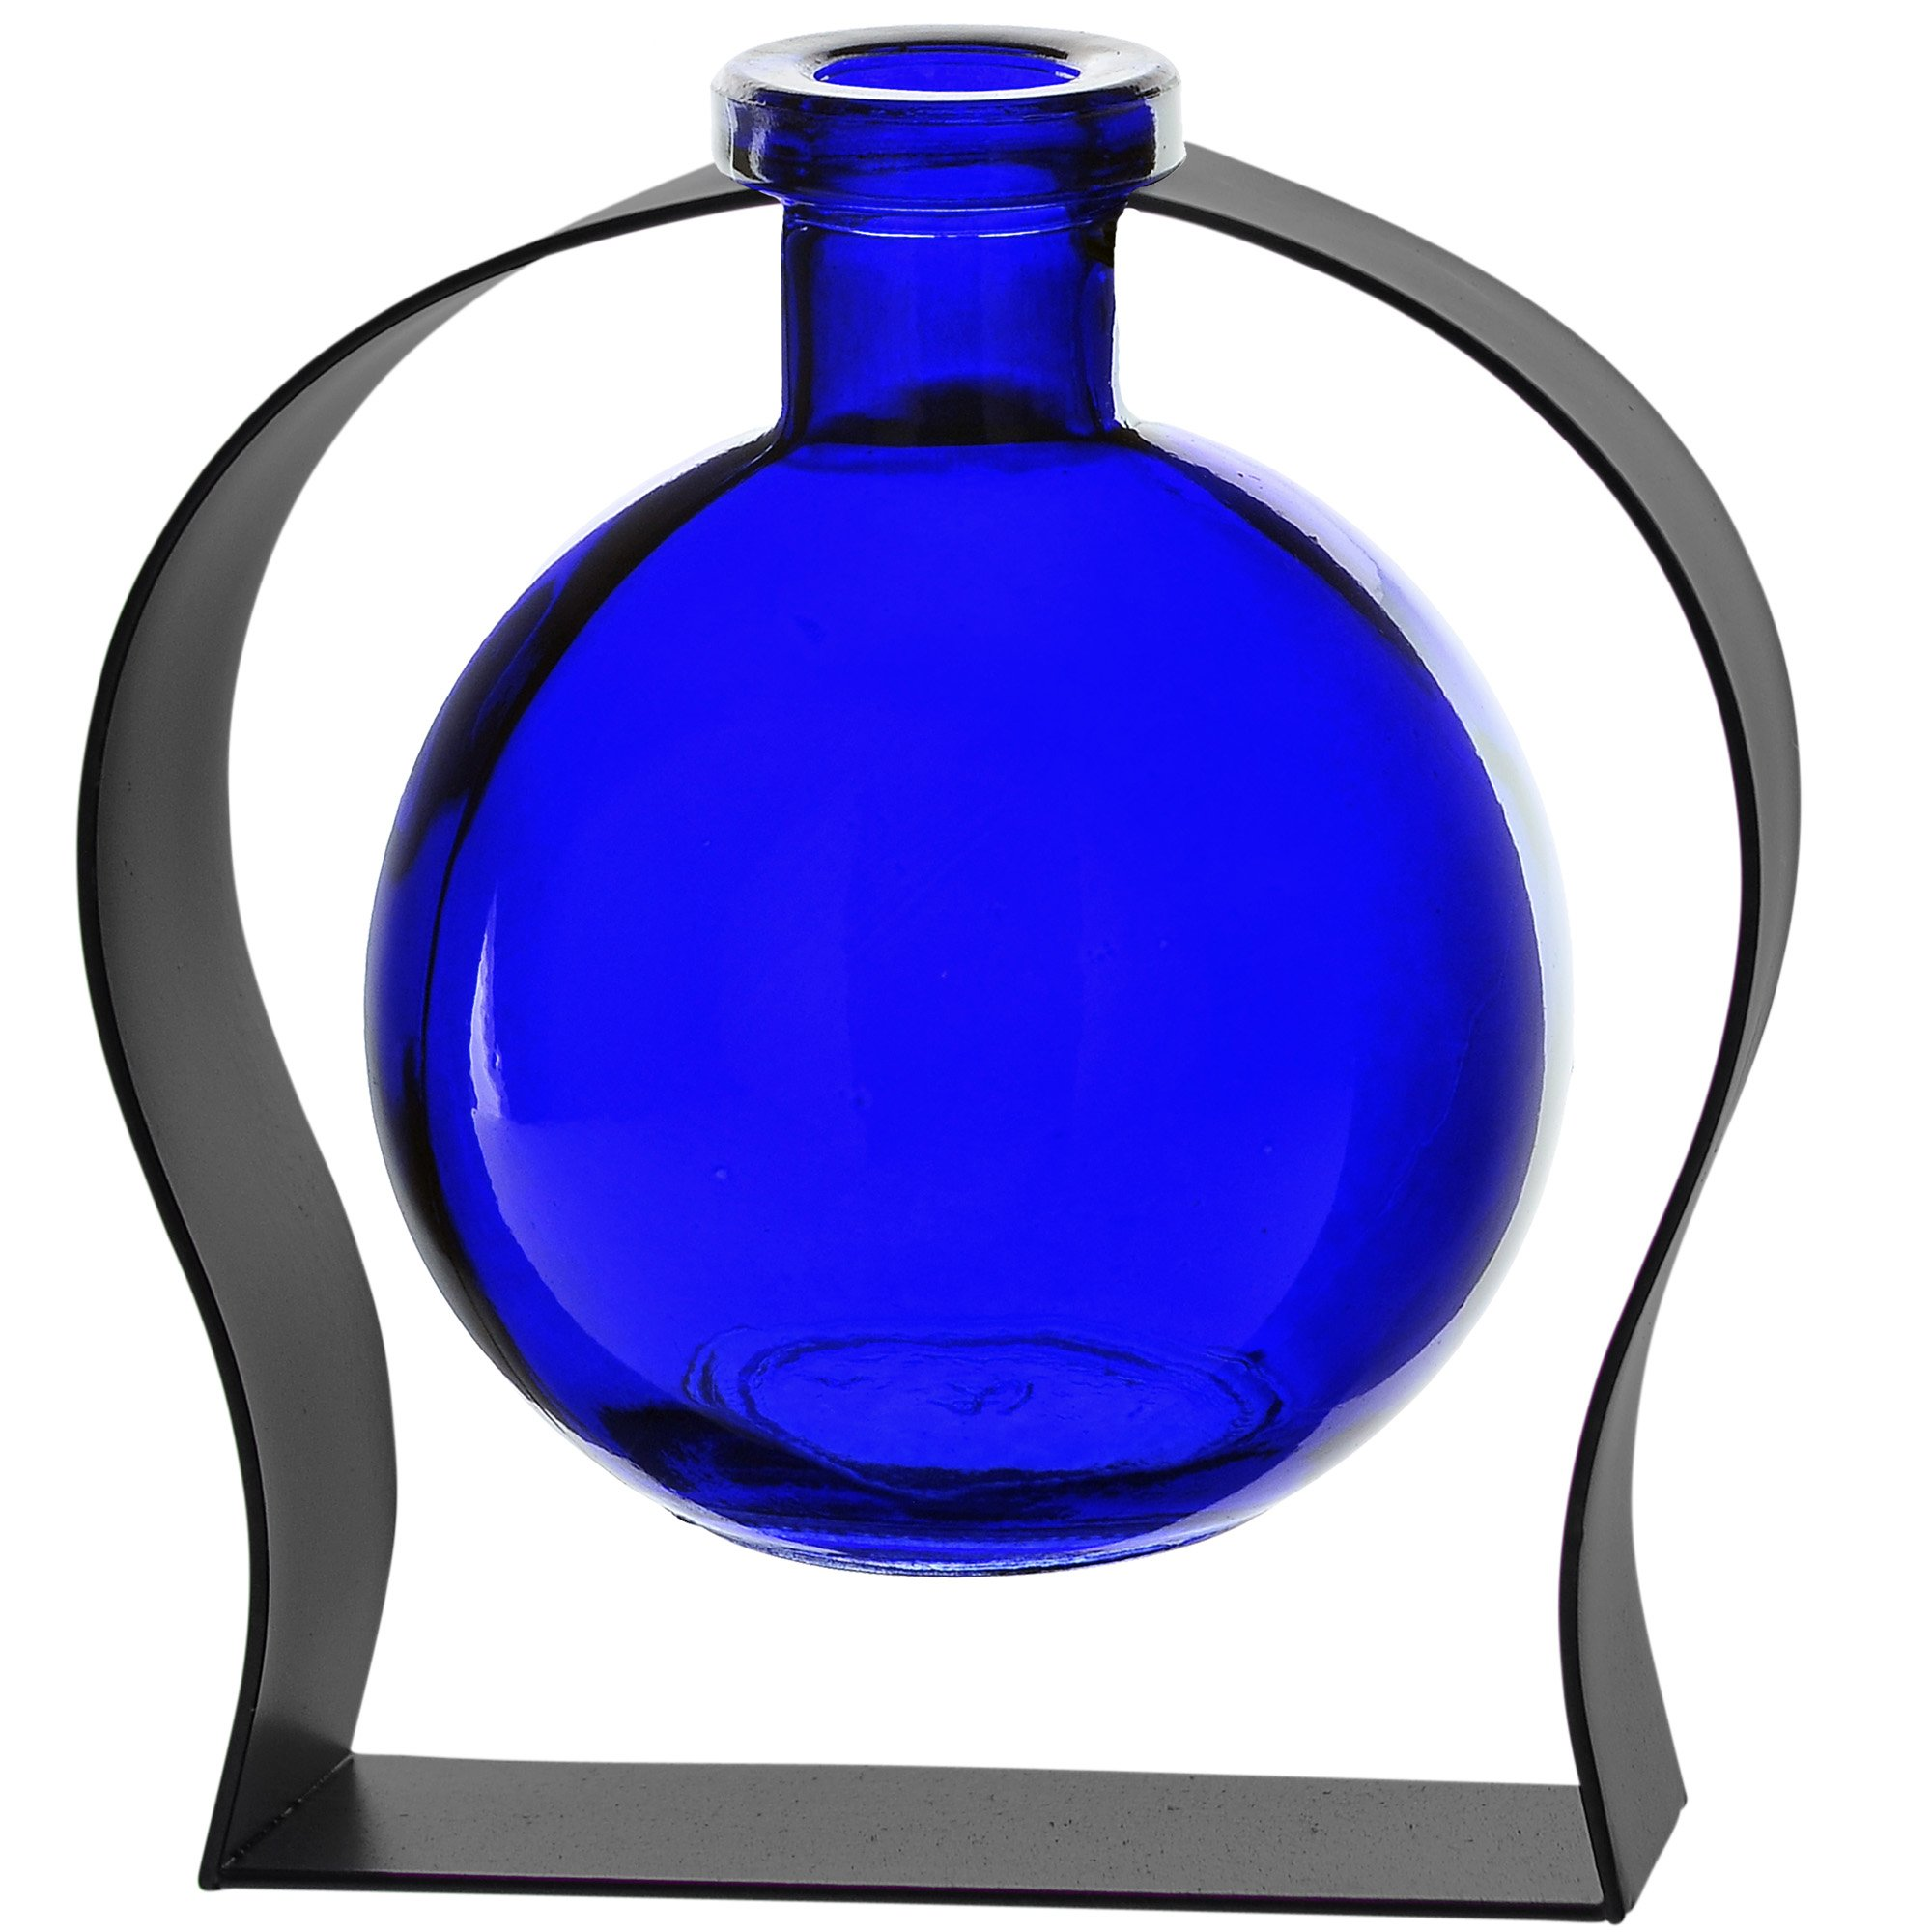 Couronne Company M244-200-15 Ball Recycled Glass Vase & Arched Metal Stand, 5 3/4'', Cobalt Blue, 1 Piece